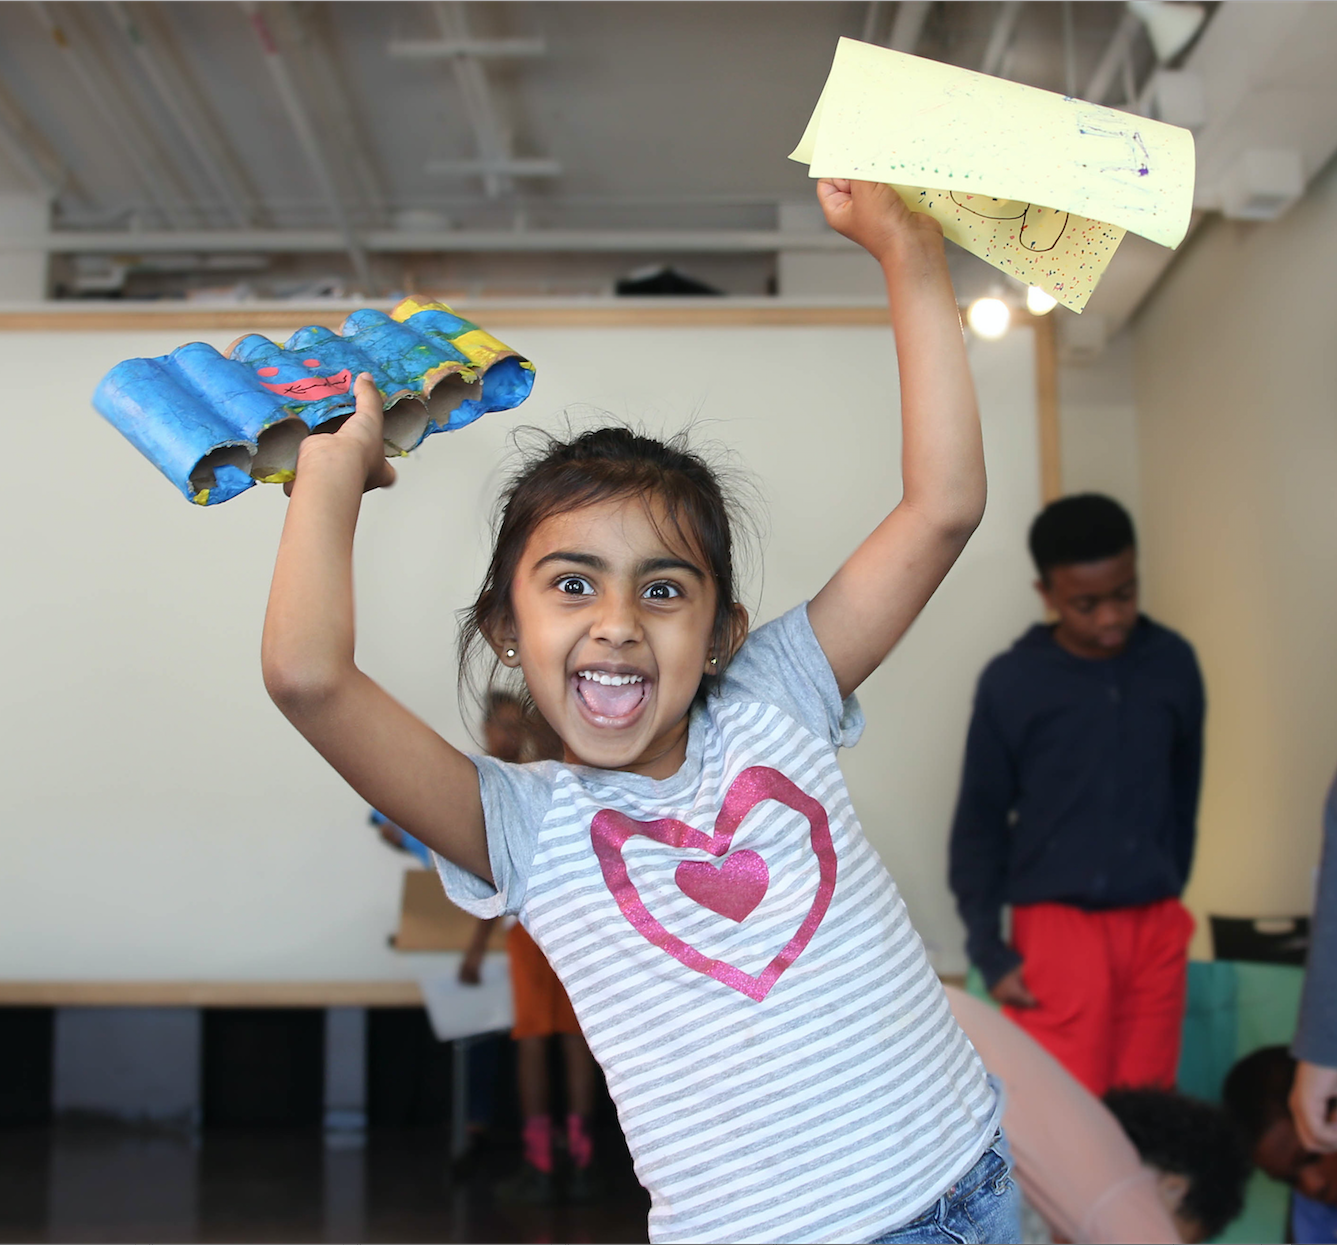 One adorable student shows her enthusiam after Mason's pop-art class. (Photo by Kentrice S. Rush/JSU)